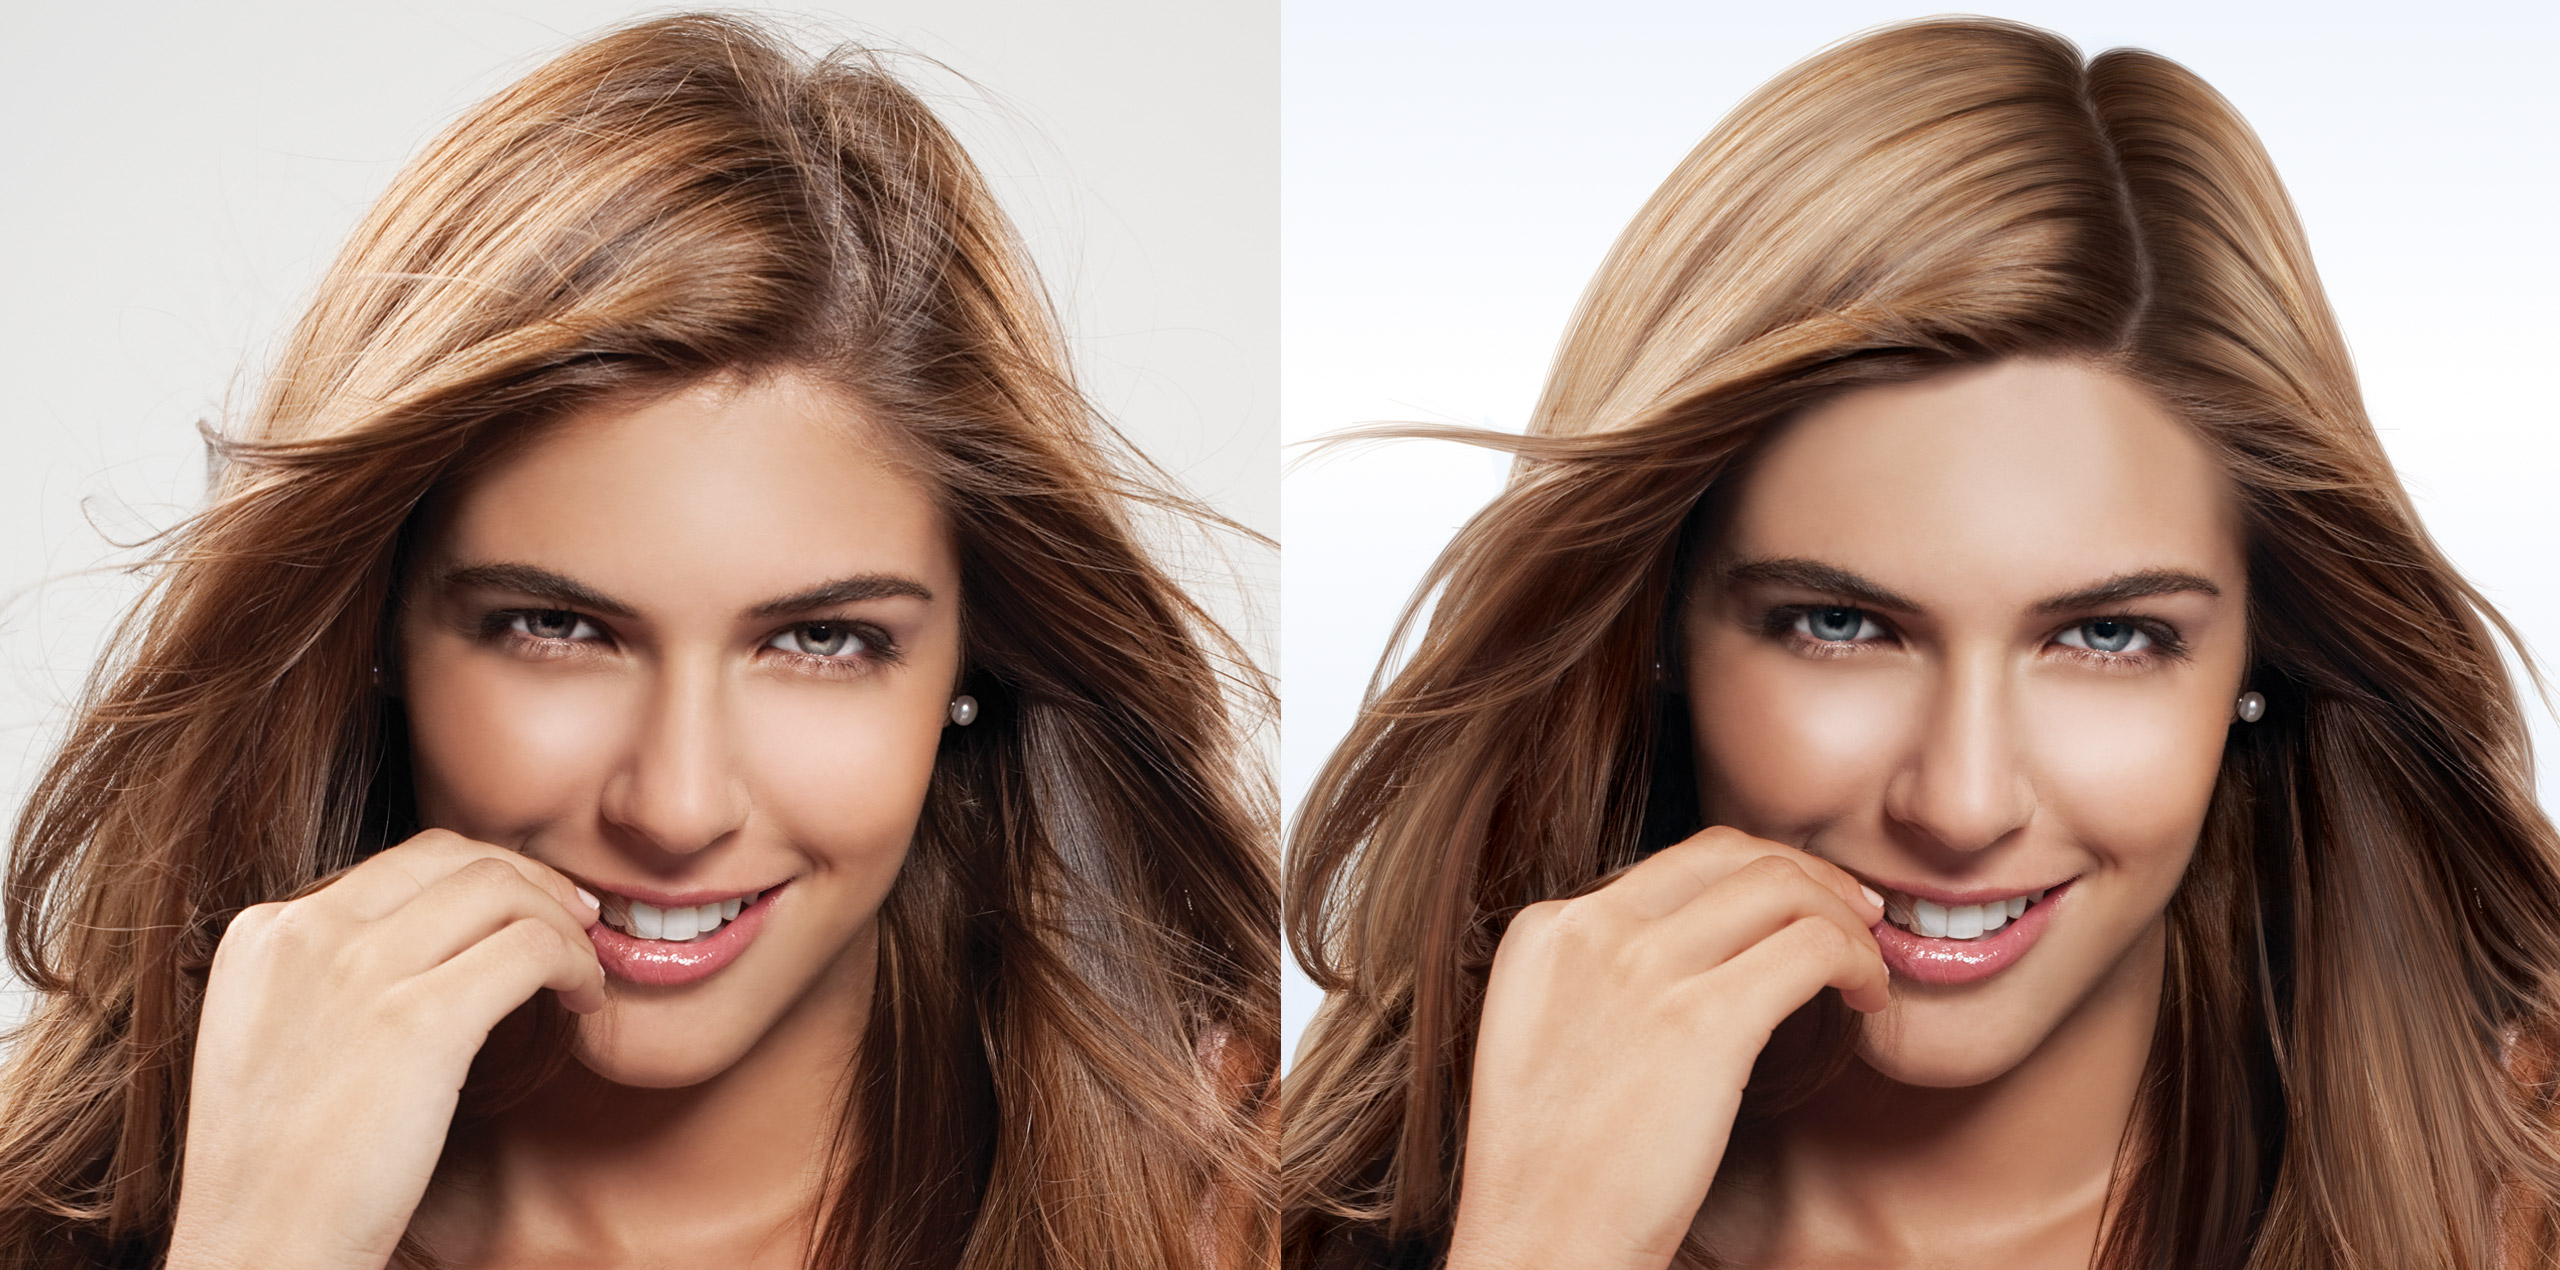 Beauty retouching hair